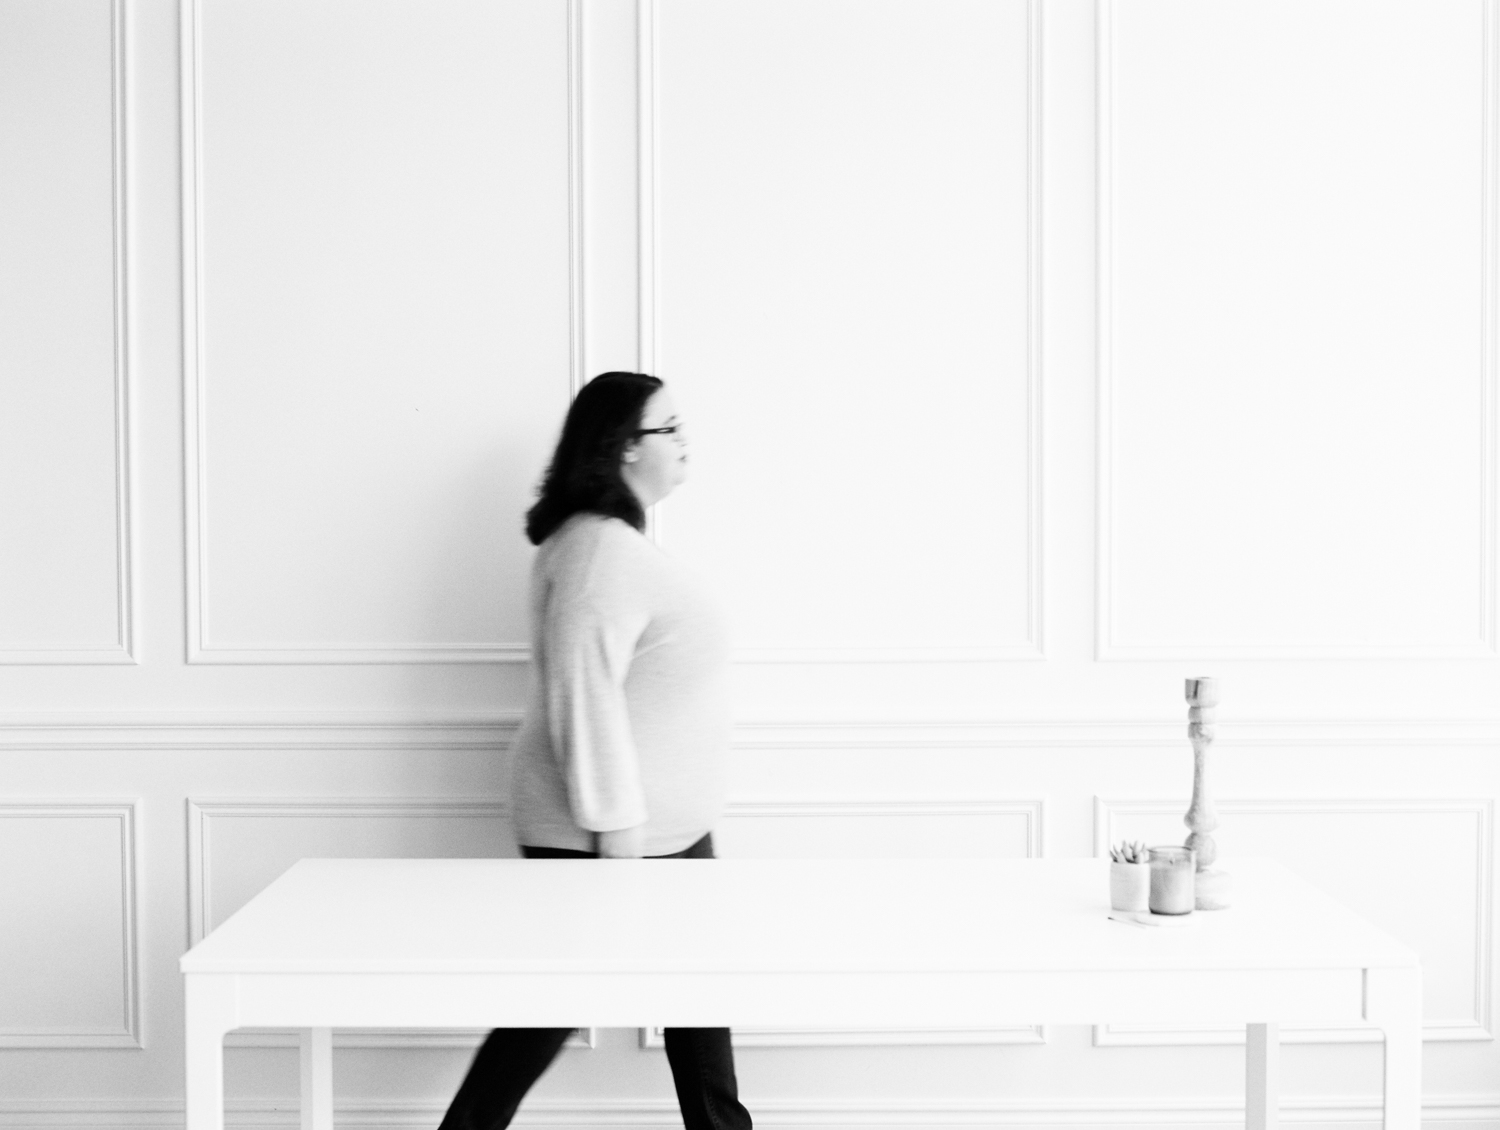 Motion blur is caught as creative business owner Stefani Jessica walks behind a white desk at Tribe Detroit during her brand photoshoot on film